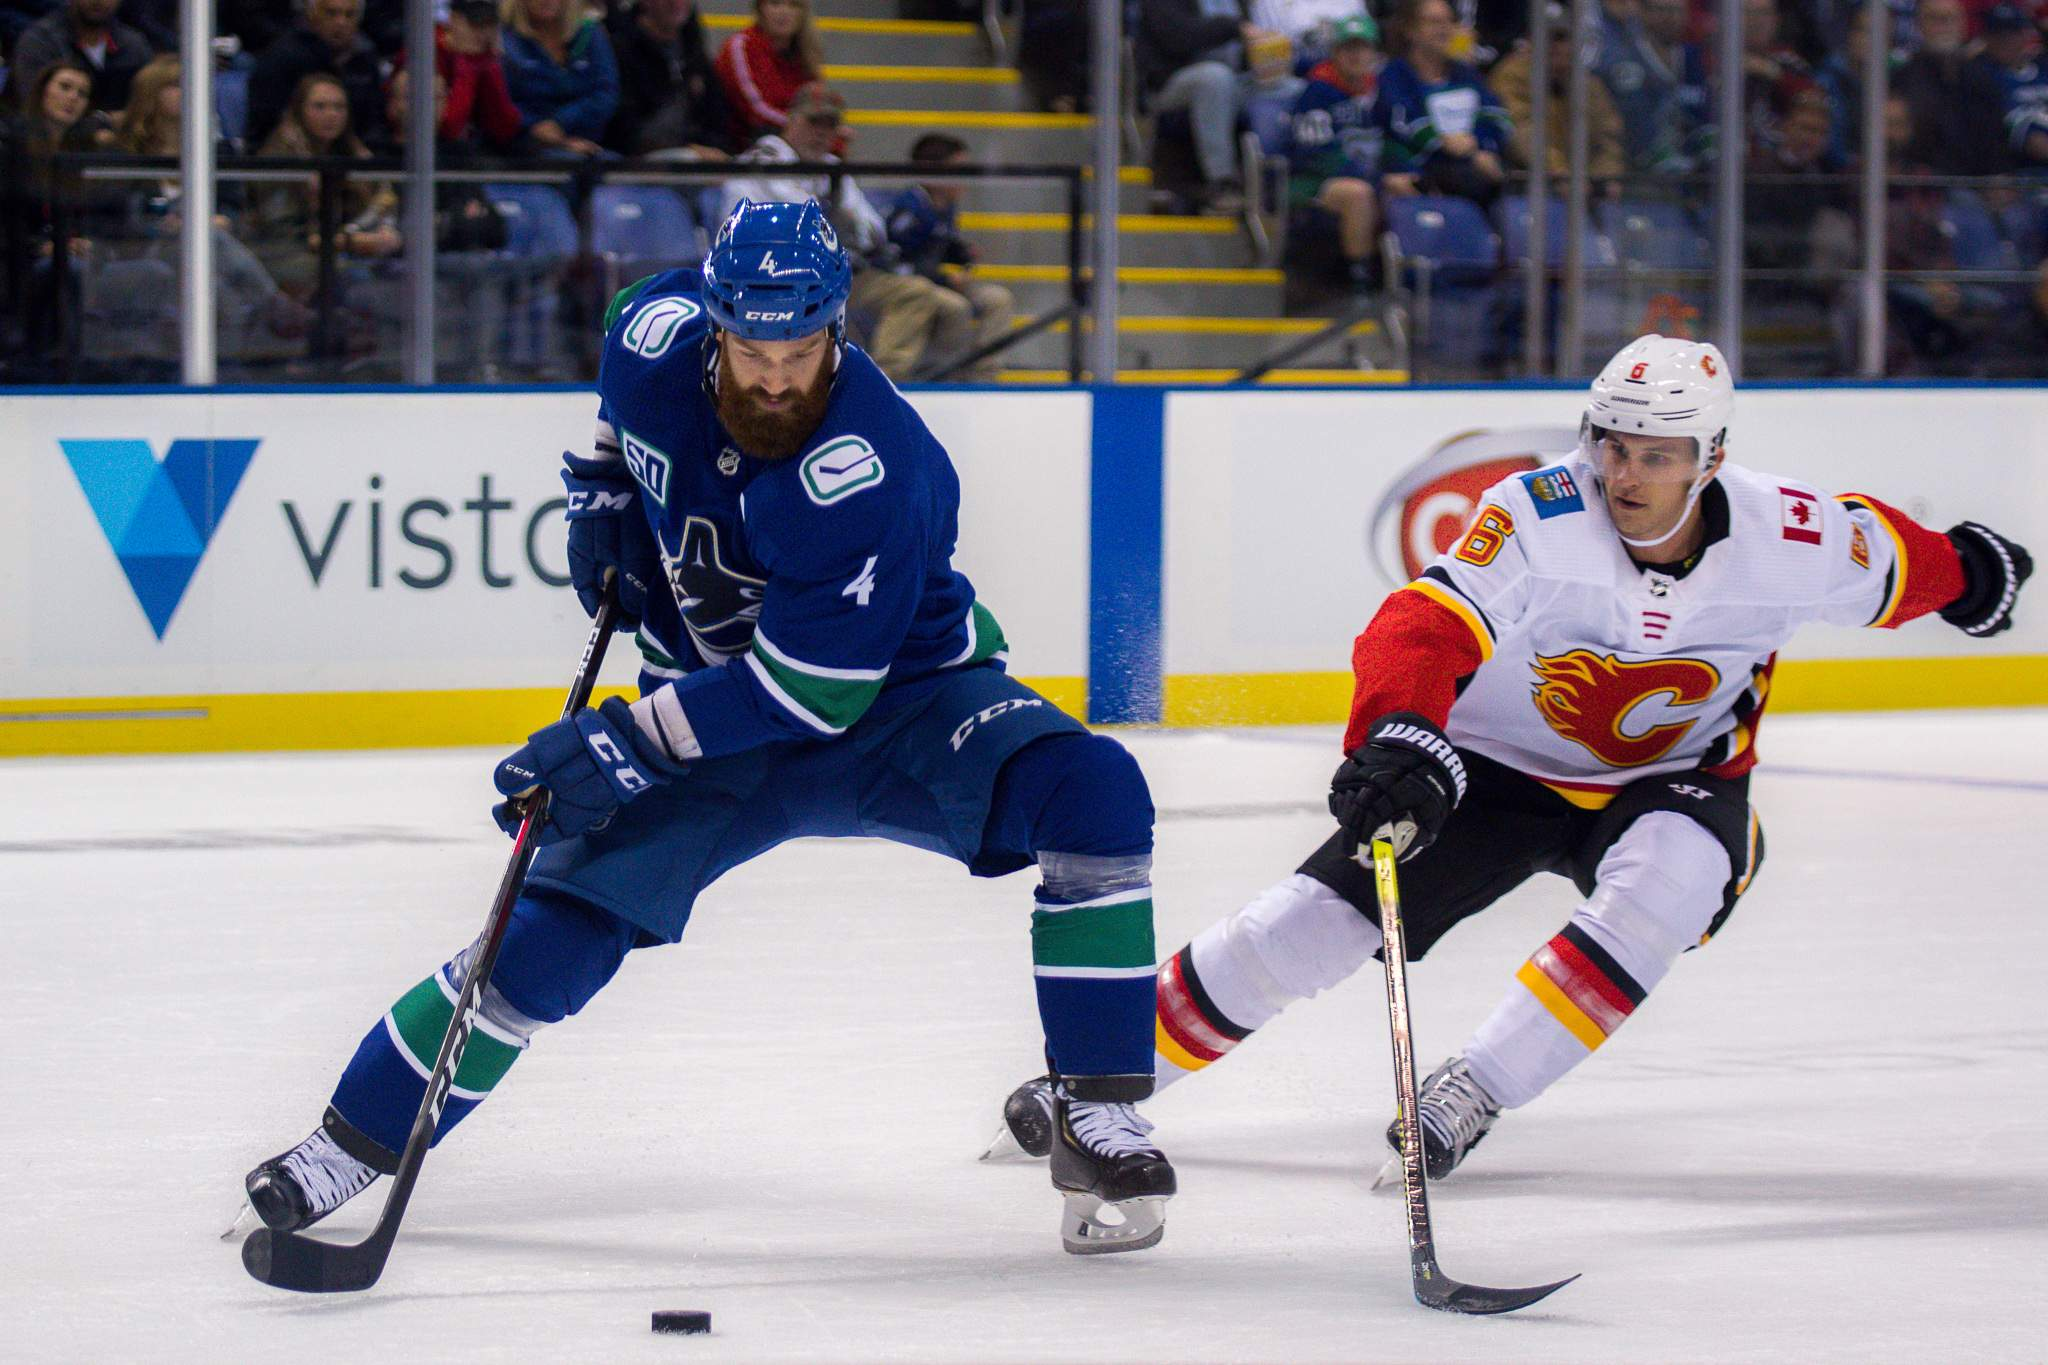 Canucks' Jordie Benn defends the puck from Flames' Brandon Davidson. Photo by Nathanael Laranjeiras